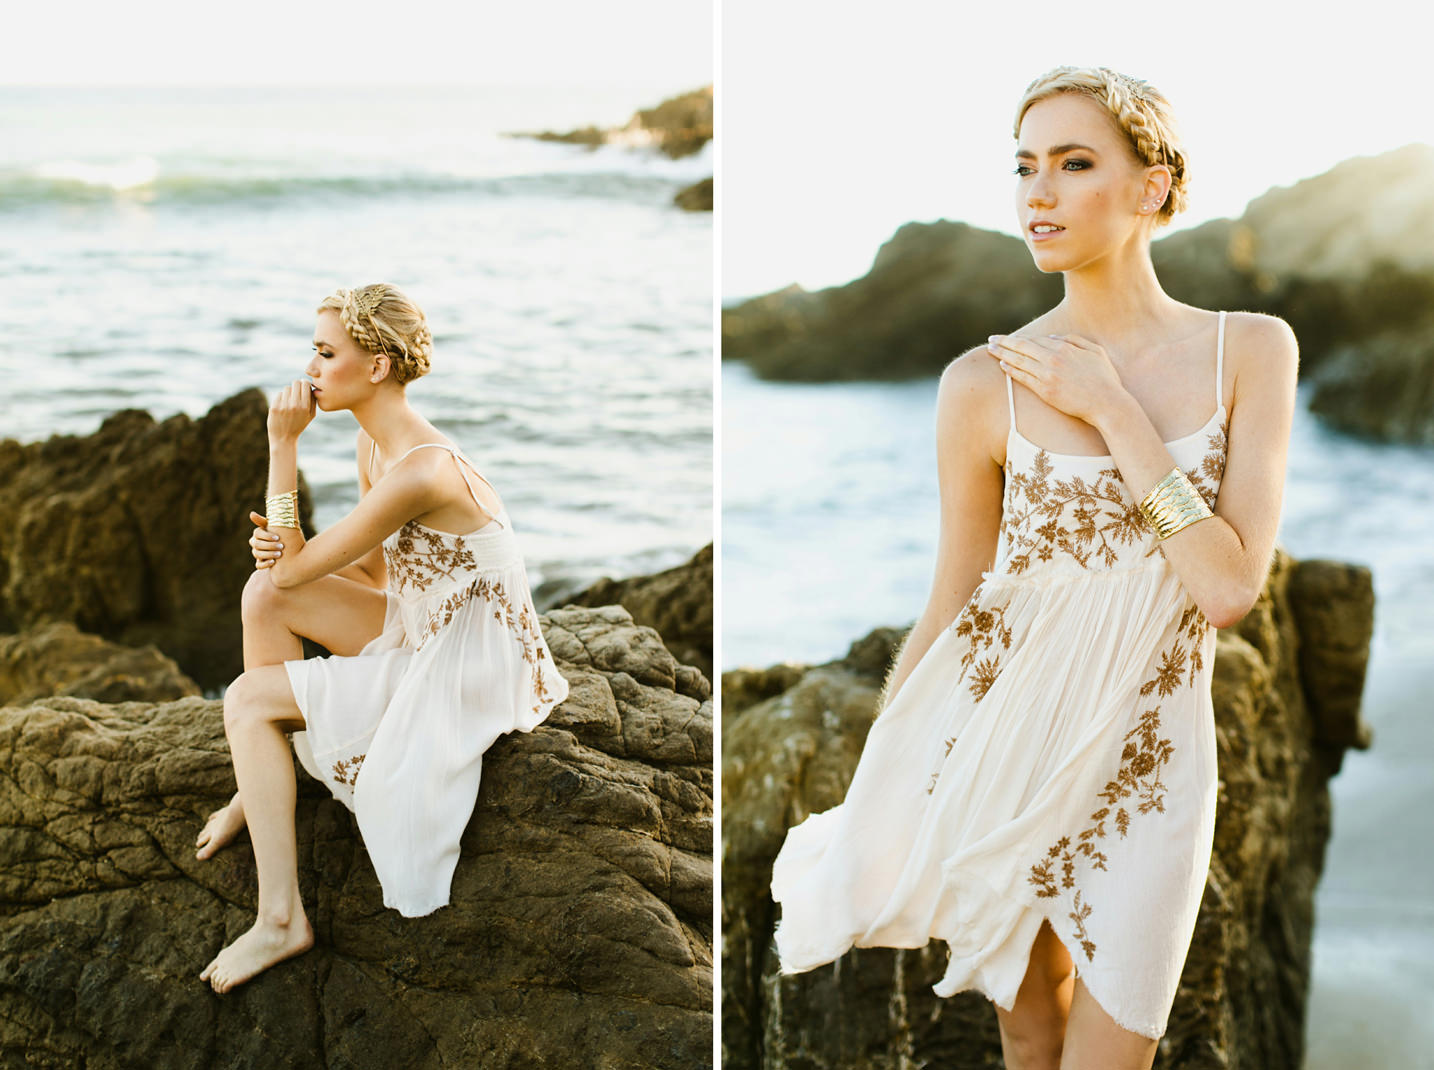 Leo Carrillo Editorial Photo Shoot / Ben Sasso